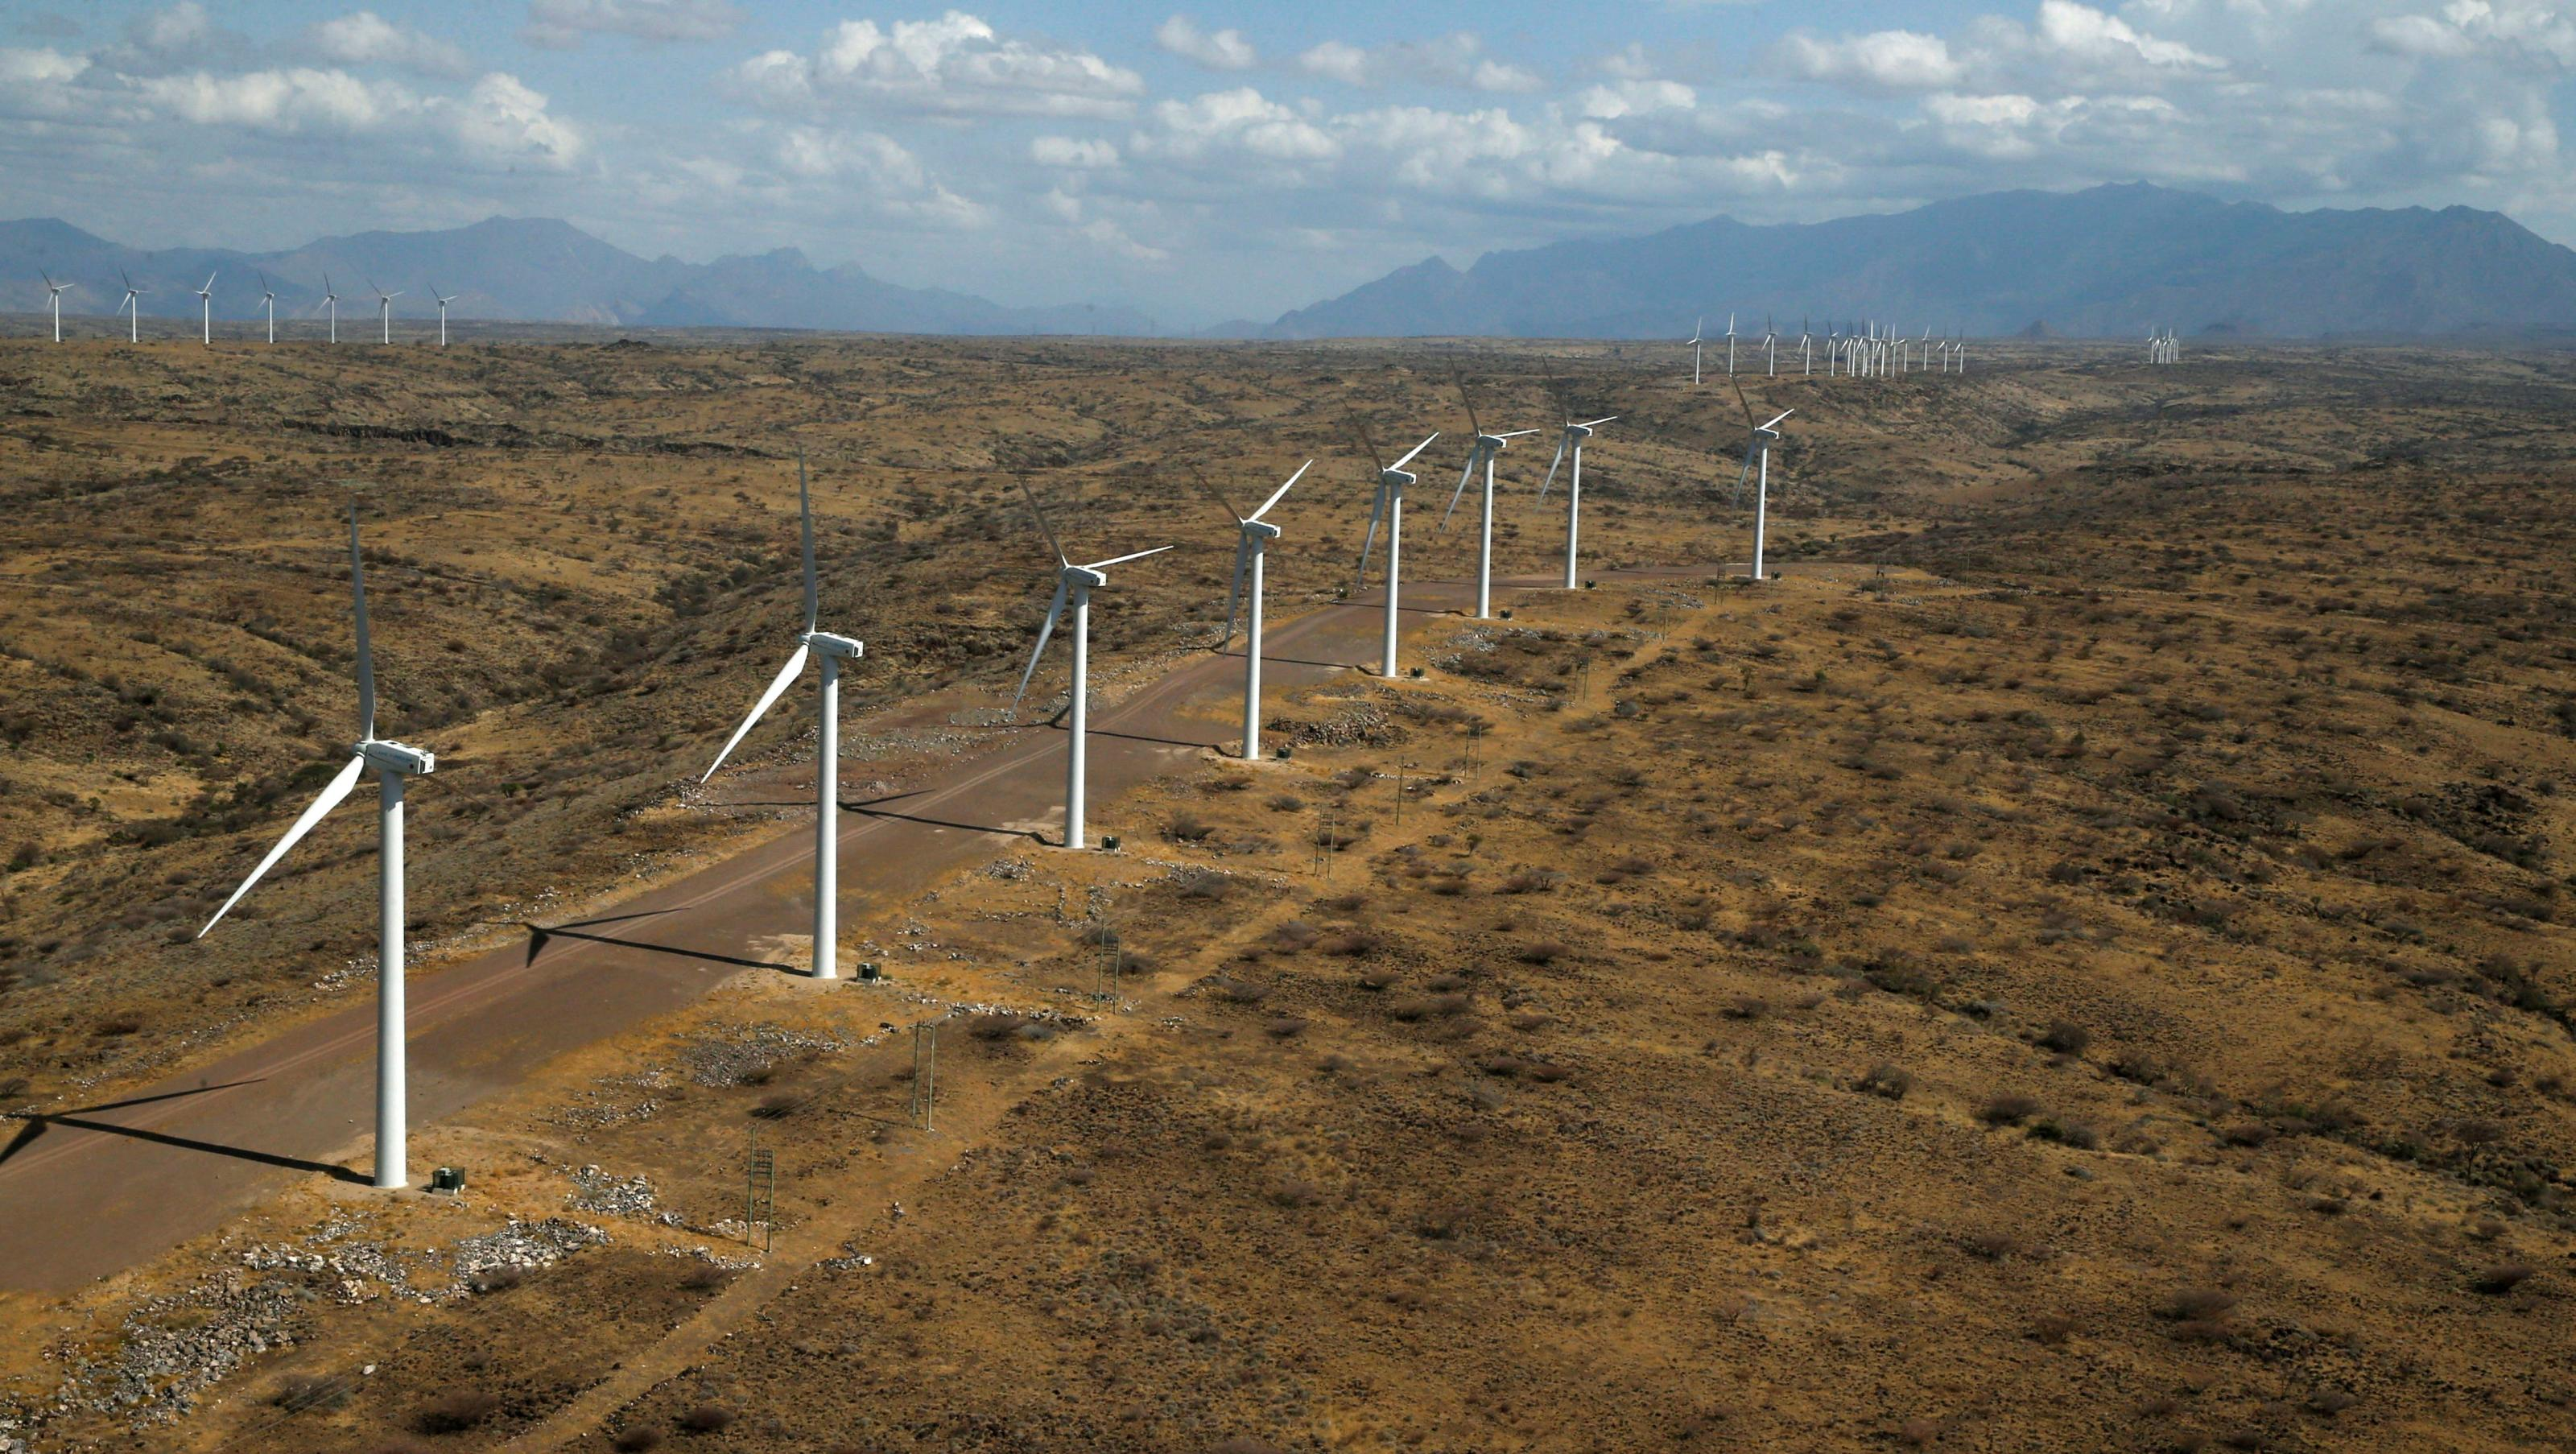 Kenya opens Africa's largest wind power project in Turkana